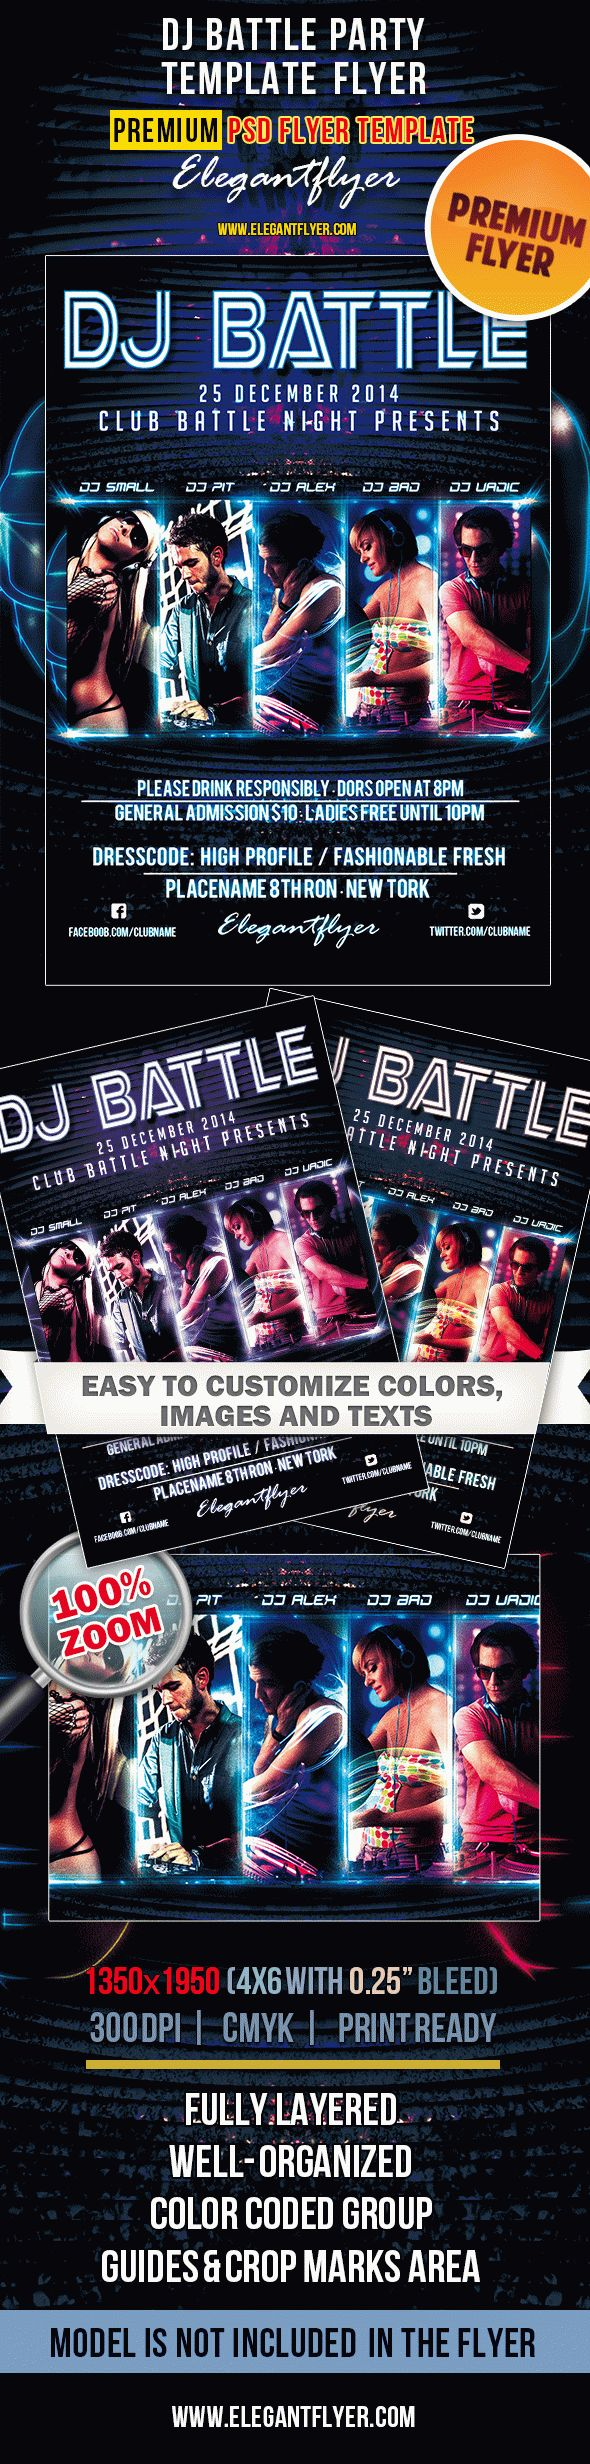 Dj battle party premium club flyer psd template by elegantflyer dj battle party premium club flyer psd template saigontimesfo